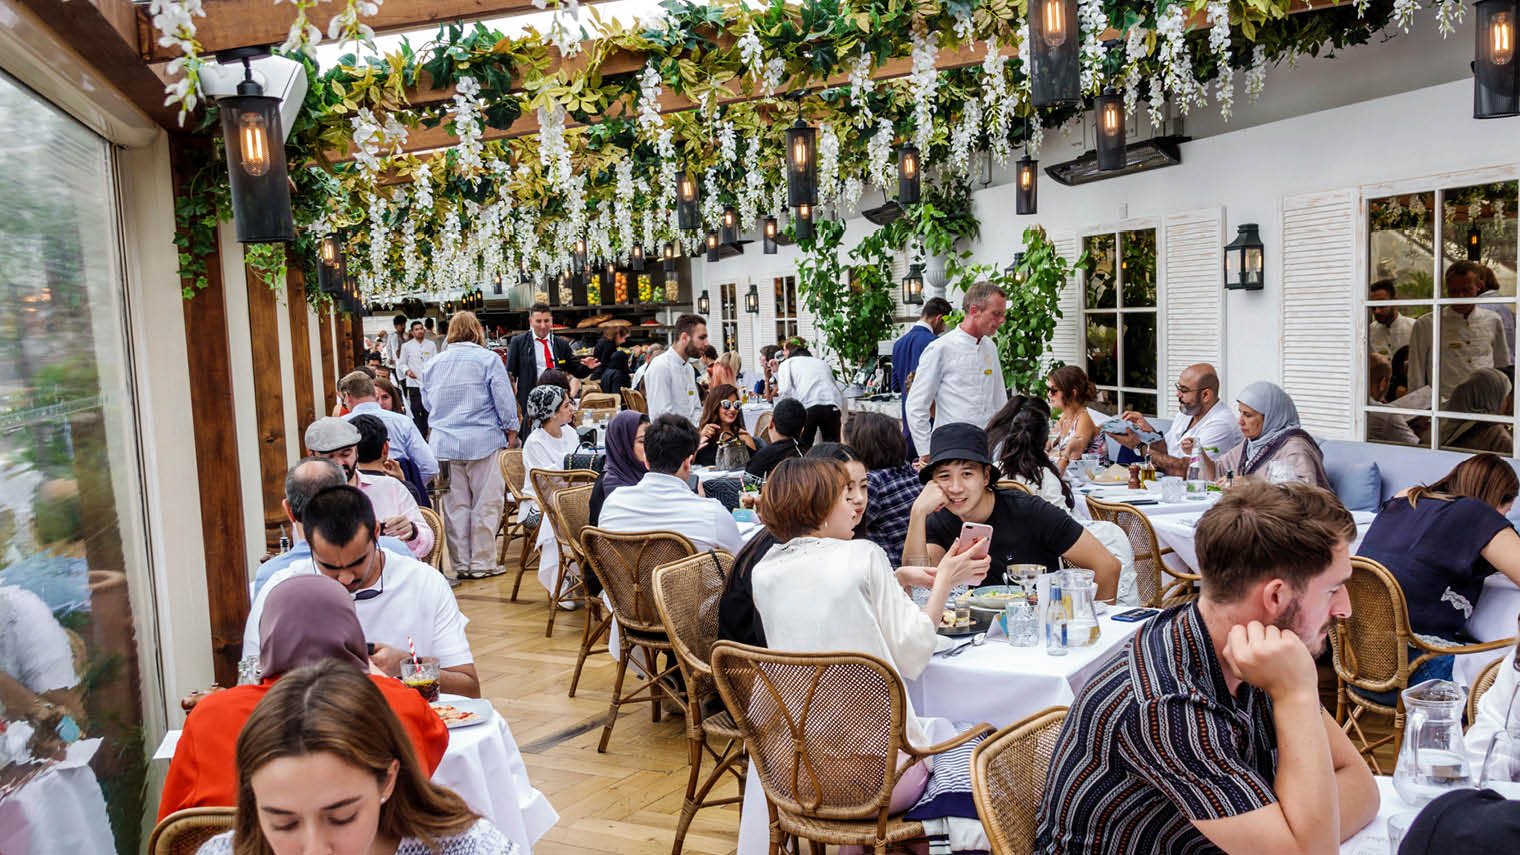 Restaurant renaissance: advice on how to revive an ailing